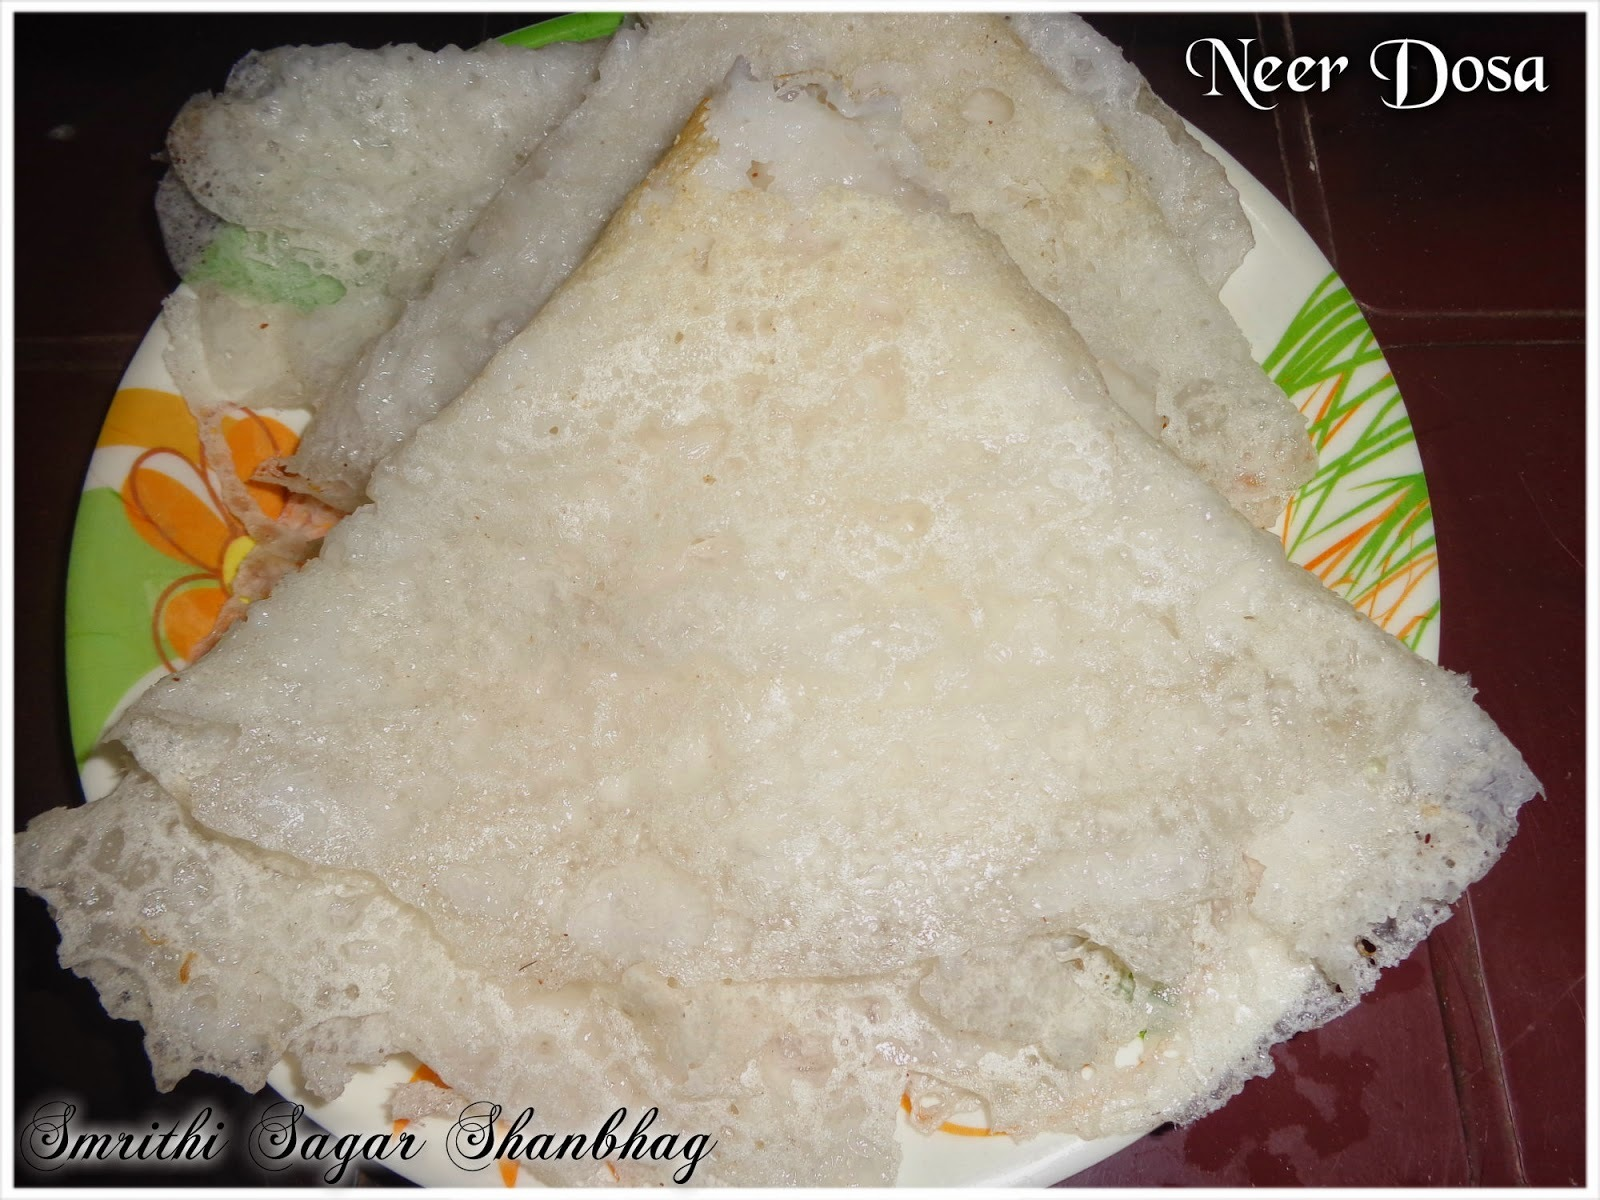 Neer Dosa : Mangalore's Special Dosa